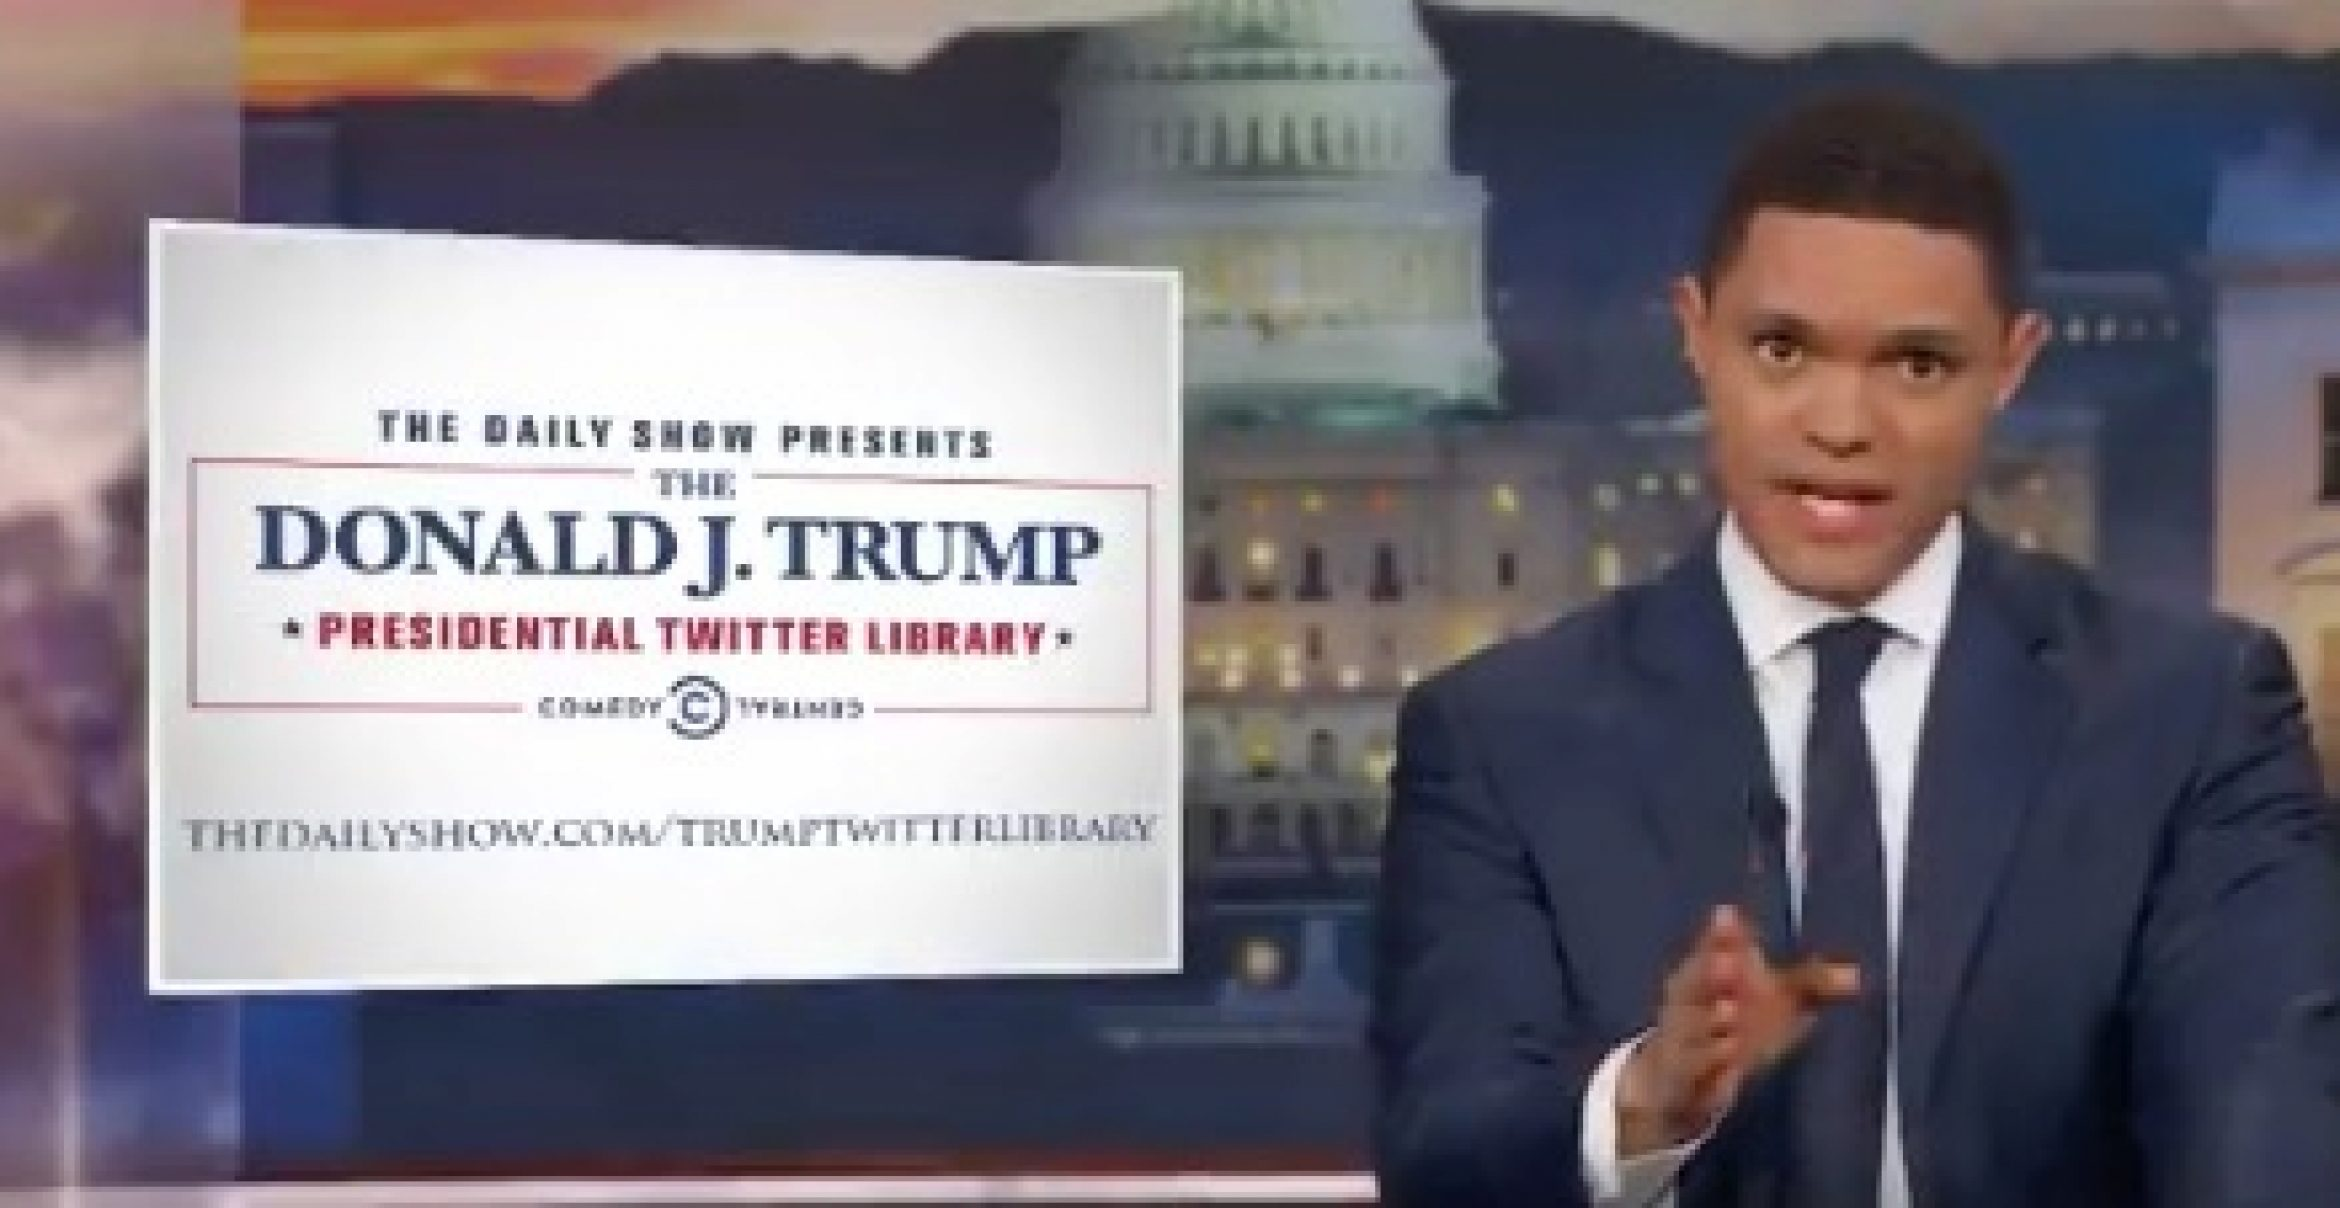 """Daily Show: """"Donald J. Trump Presidential Twitter Library"""""""